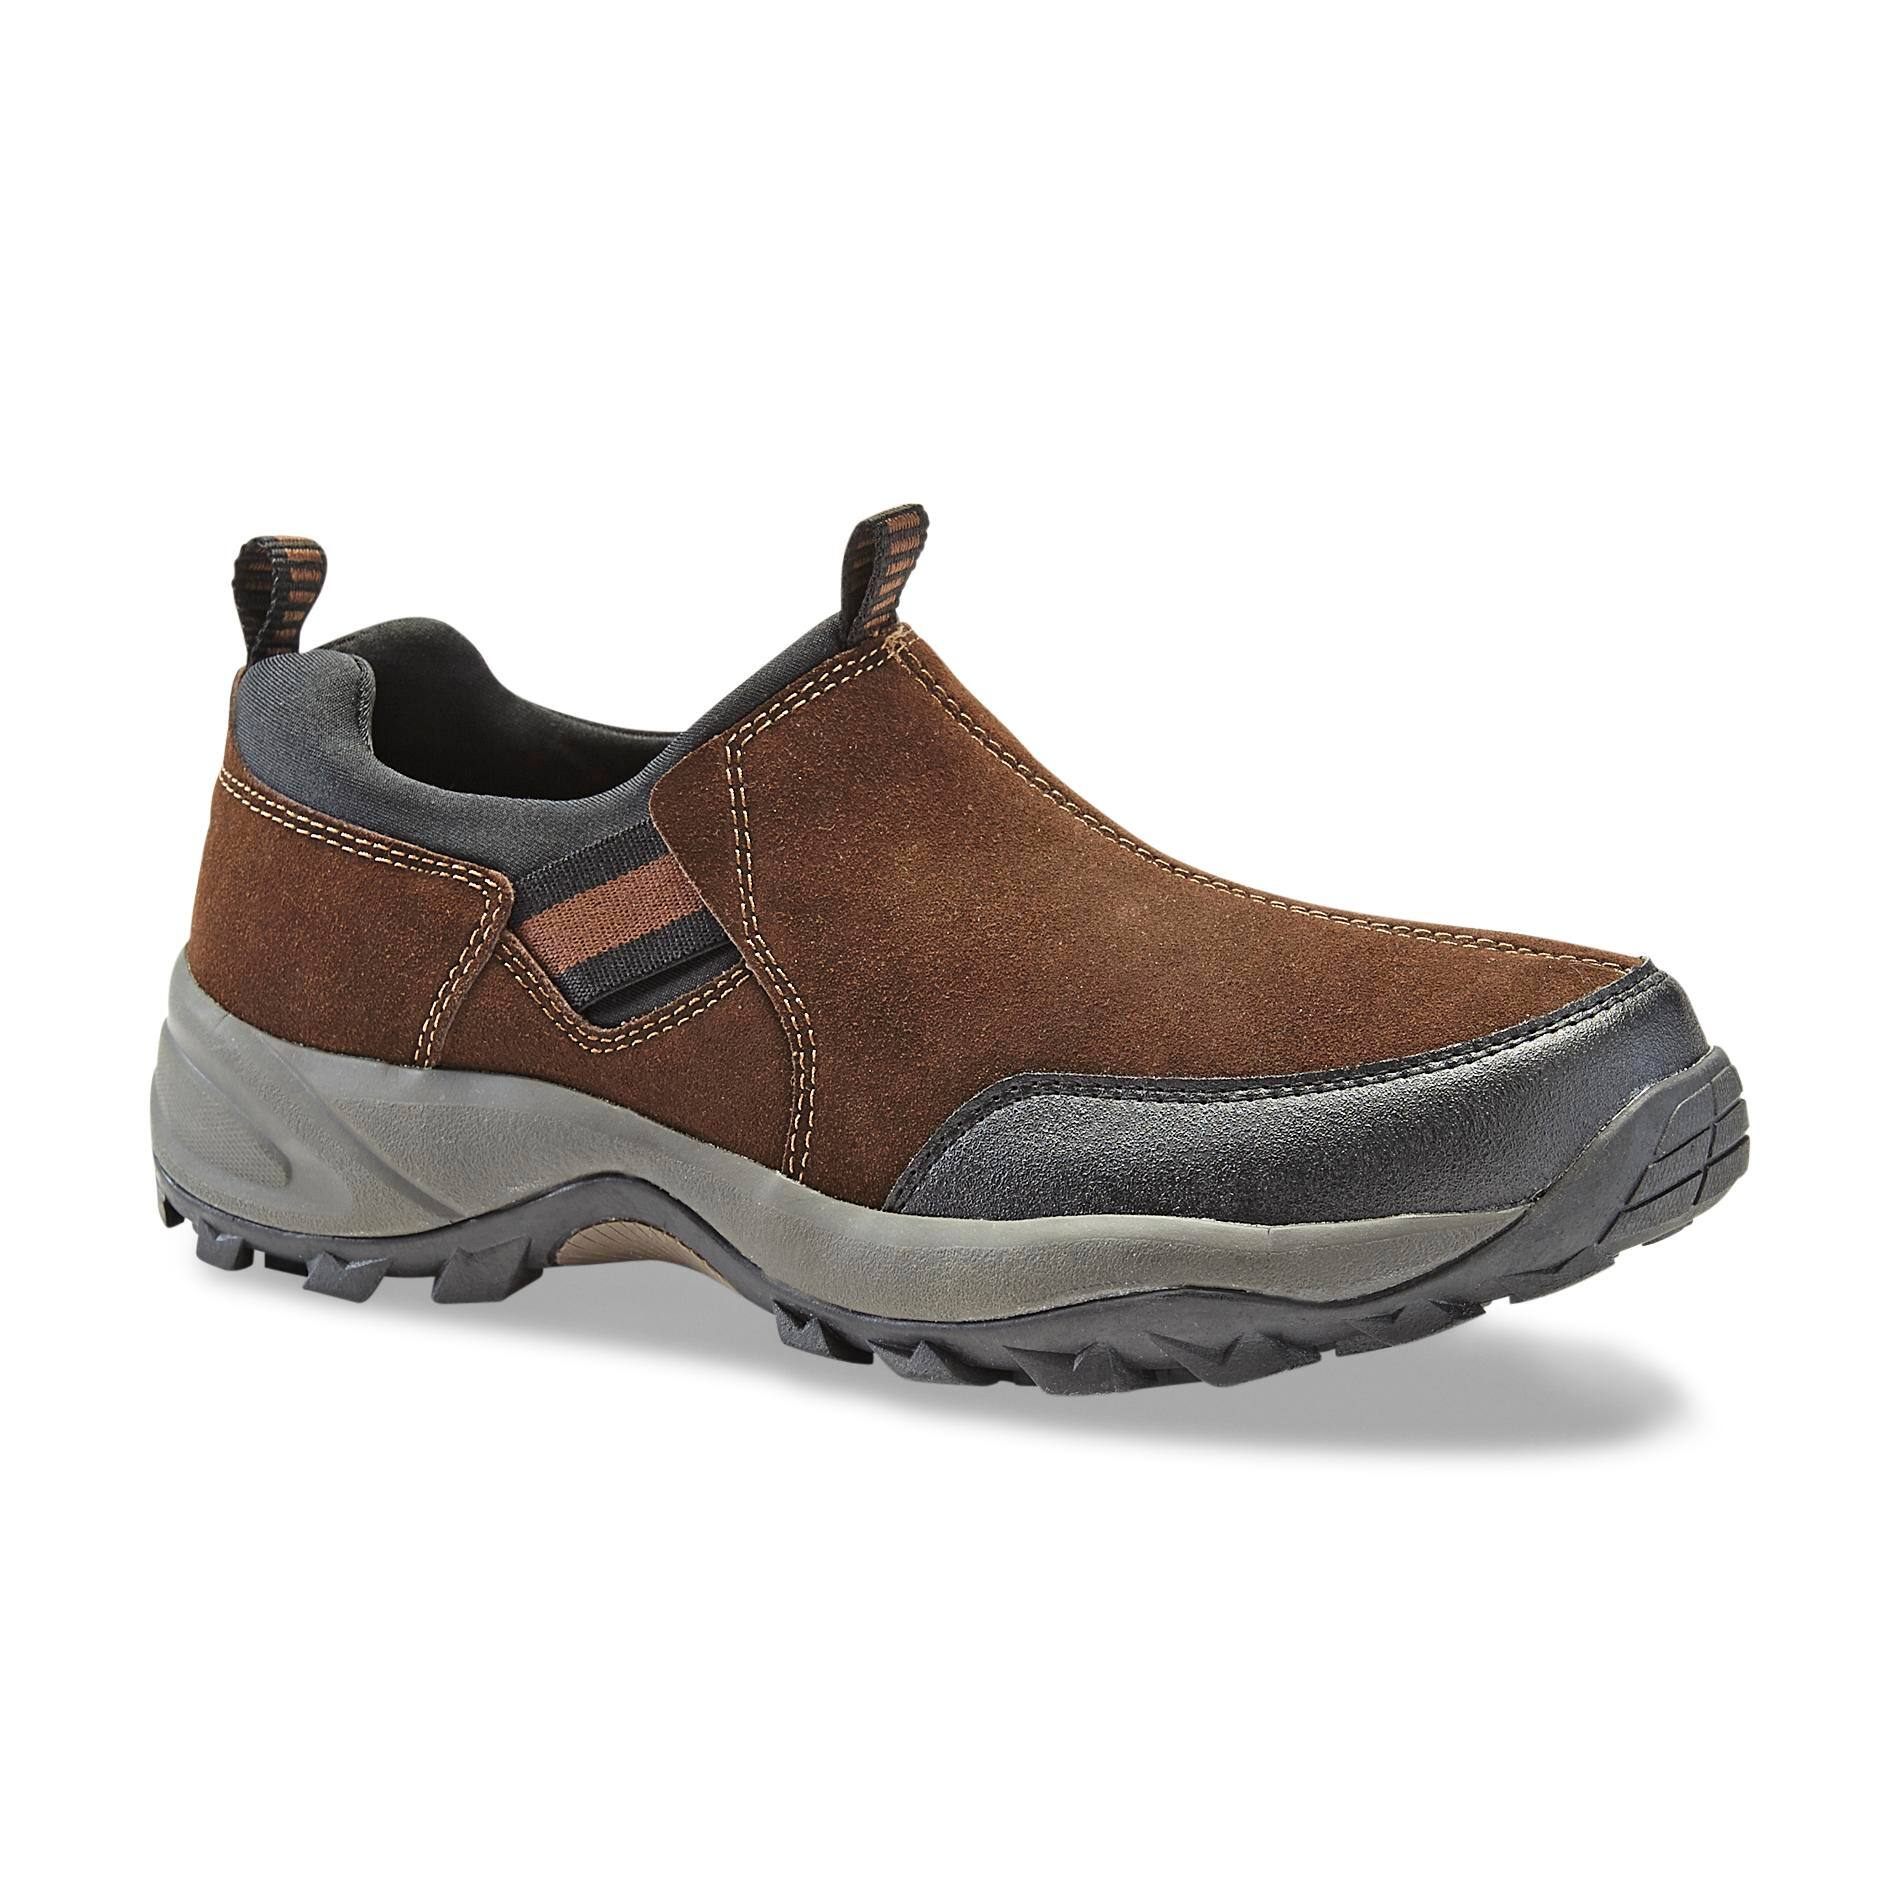 Sears Mens Outdoor Life Shoes.  Buy 2 for $40, get $18 SYW points. Free shipping.